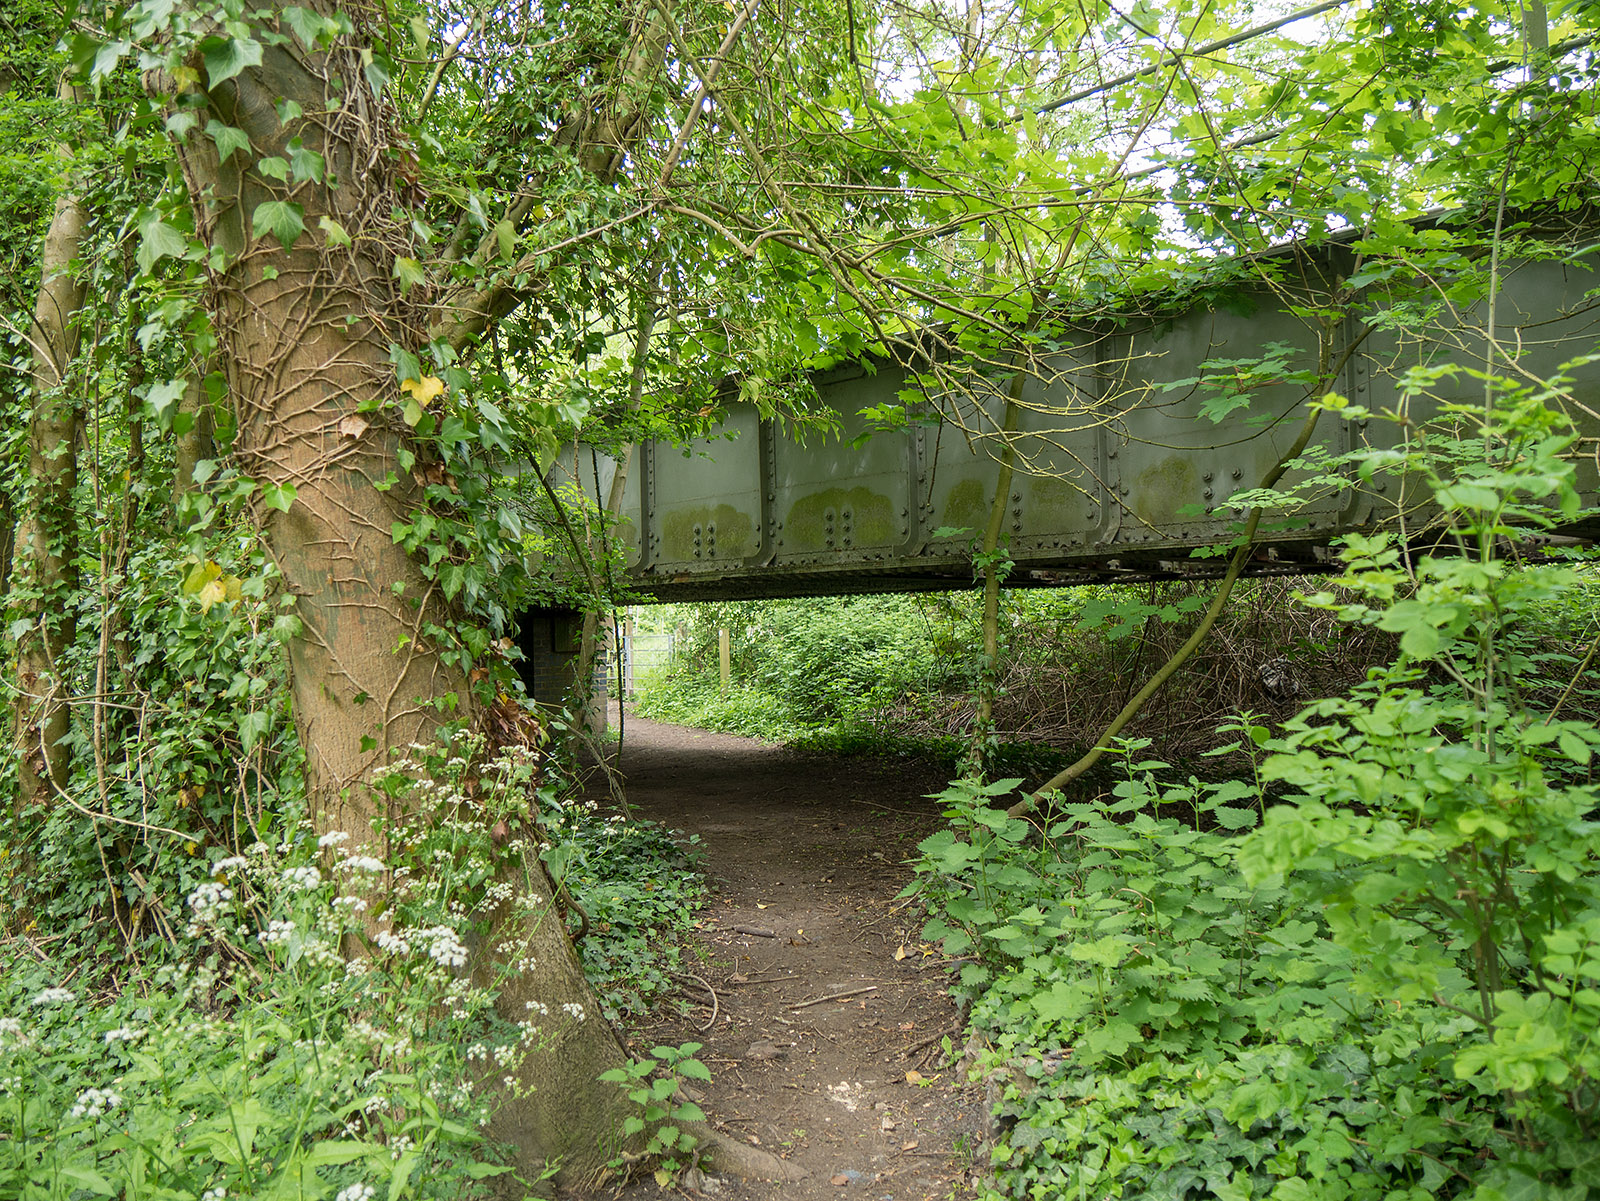 Underneath the railway after Shiplake